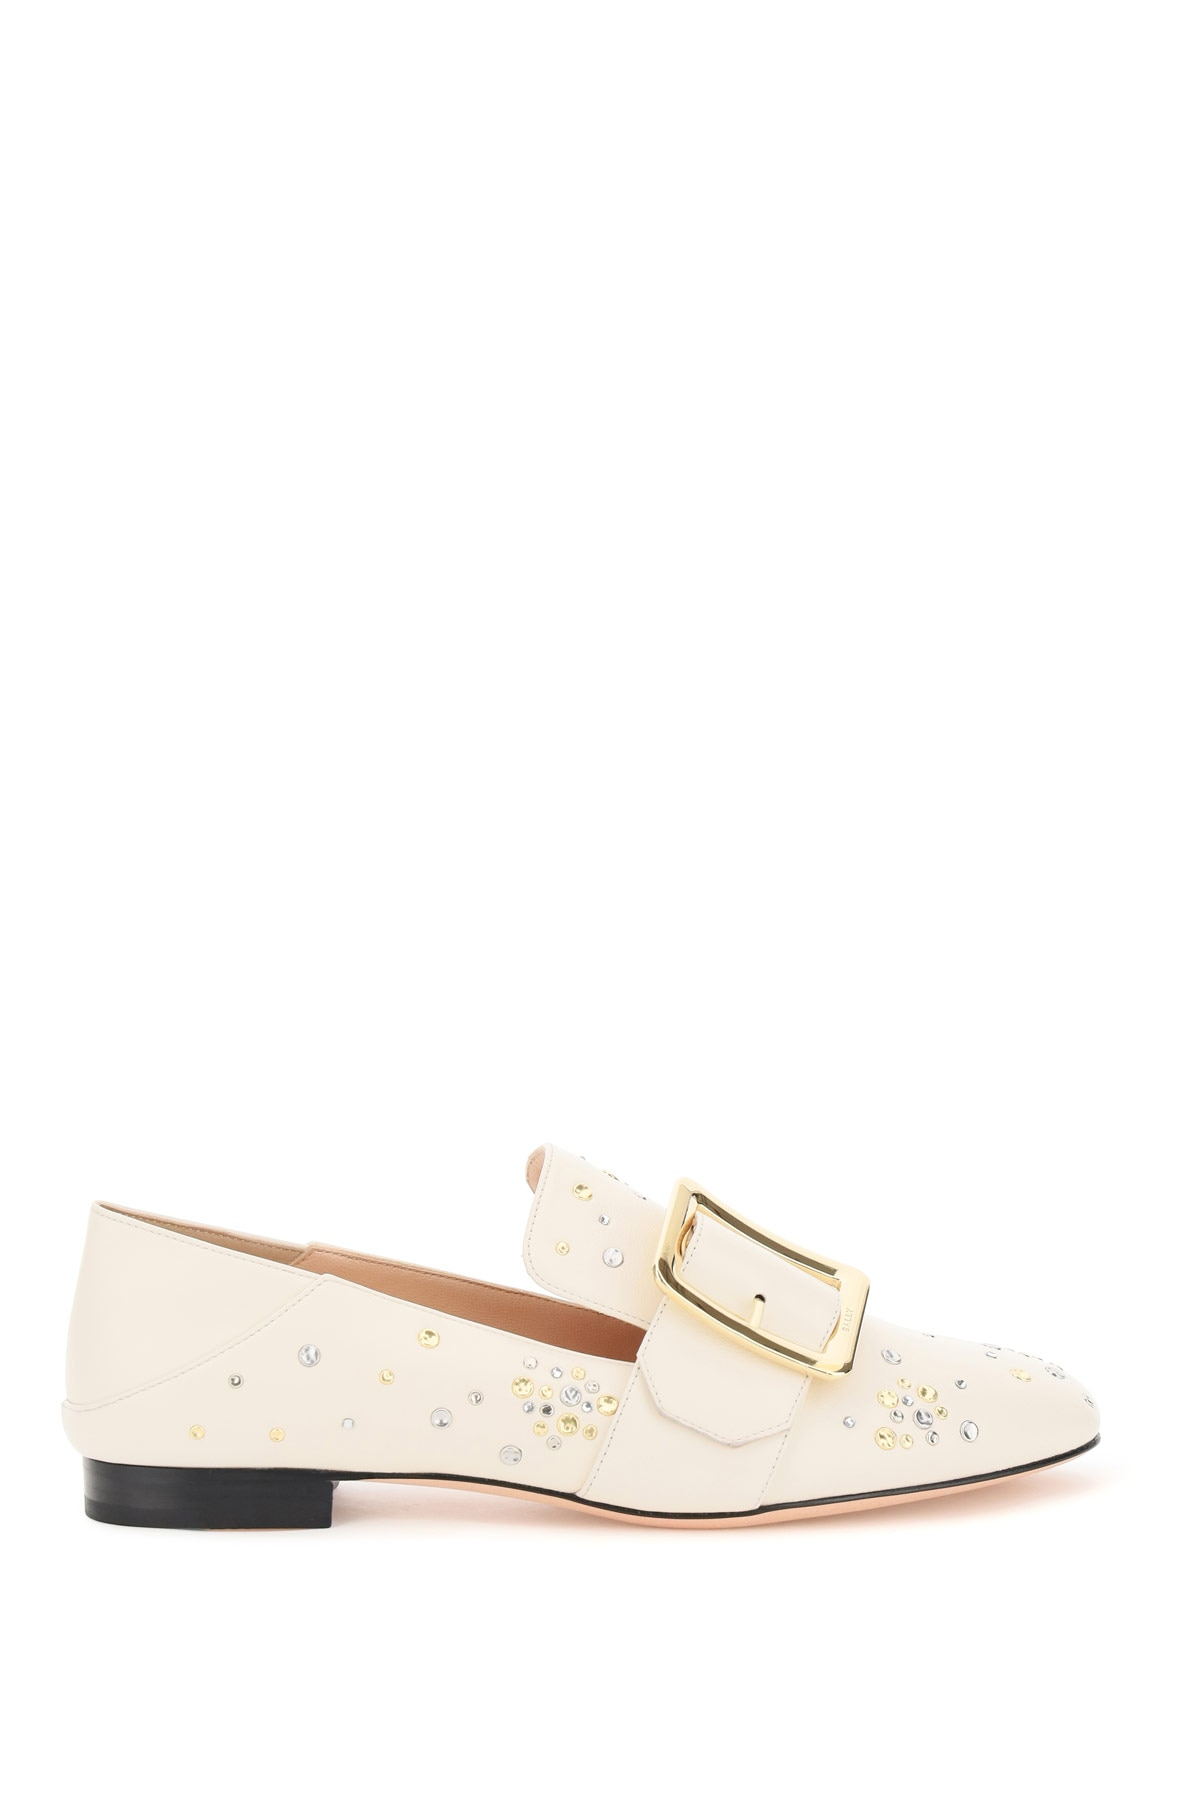 BALLY JANELLE LOAFERS 37 Beige, White Leather